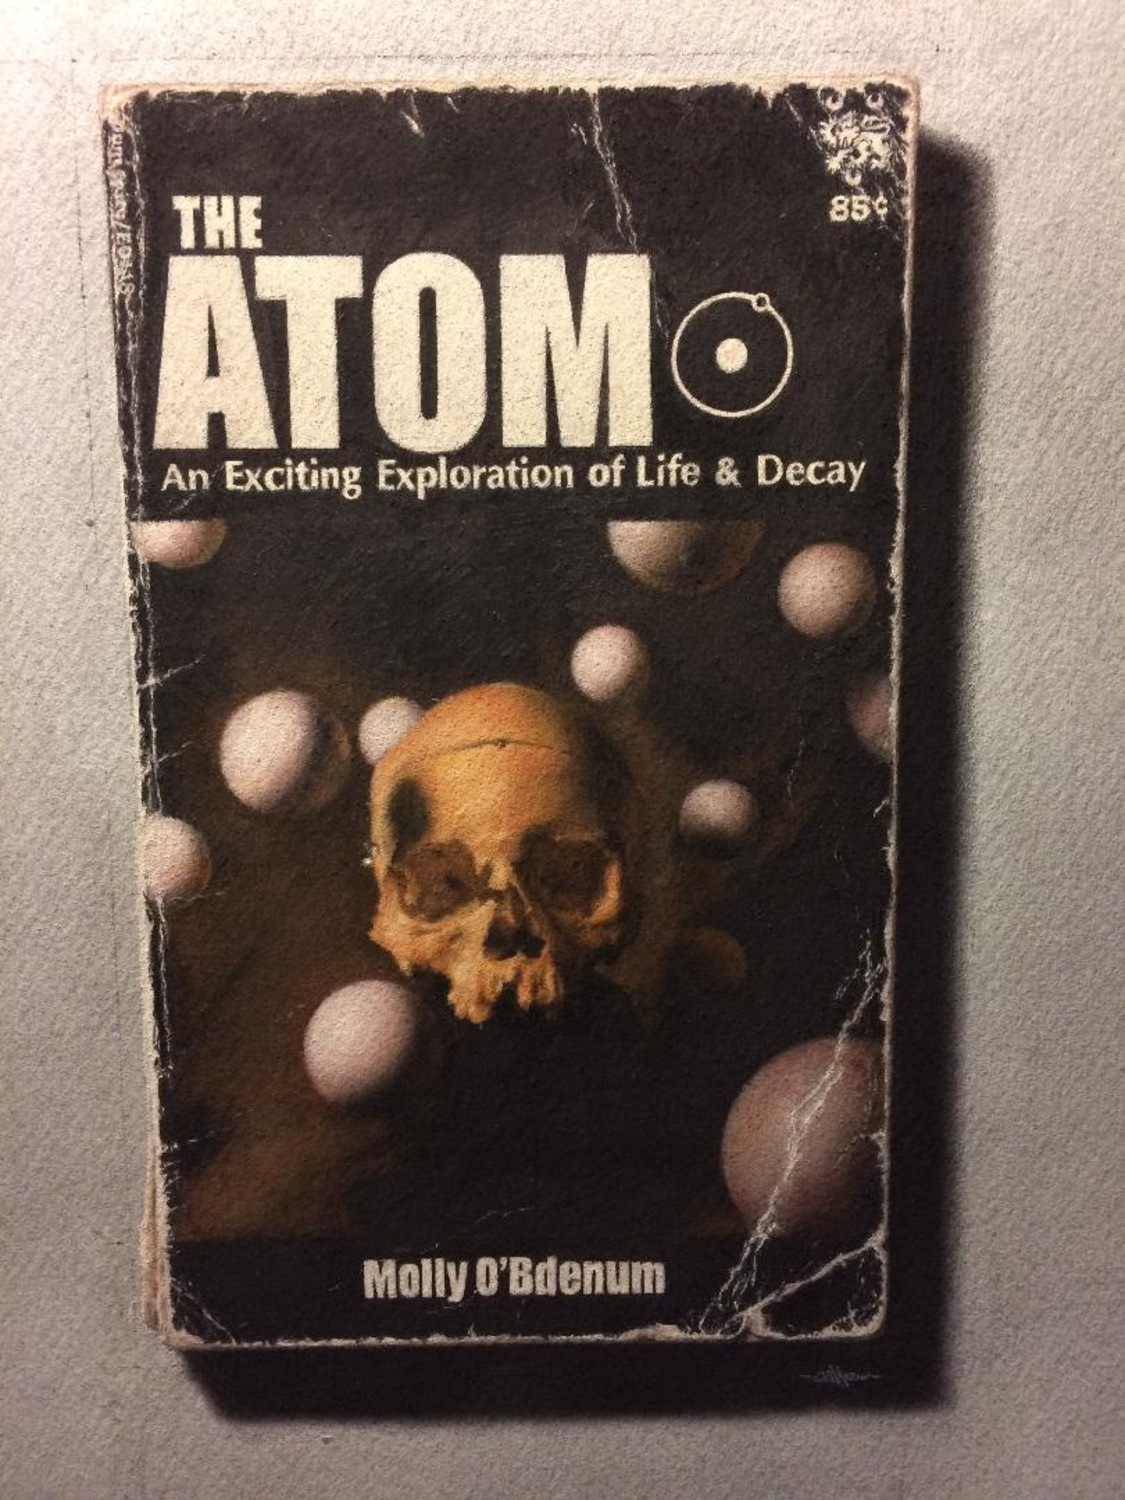 THE ATOM Artwork by Joseph Dillon